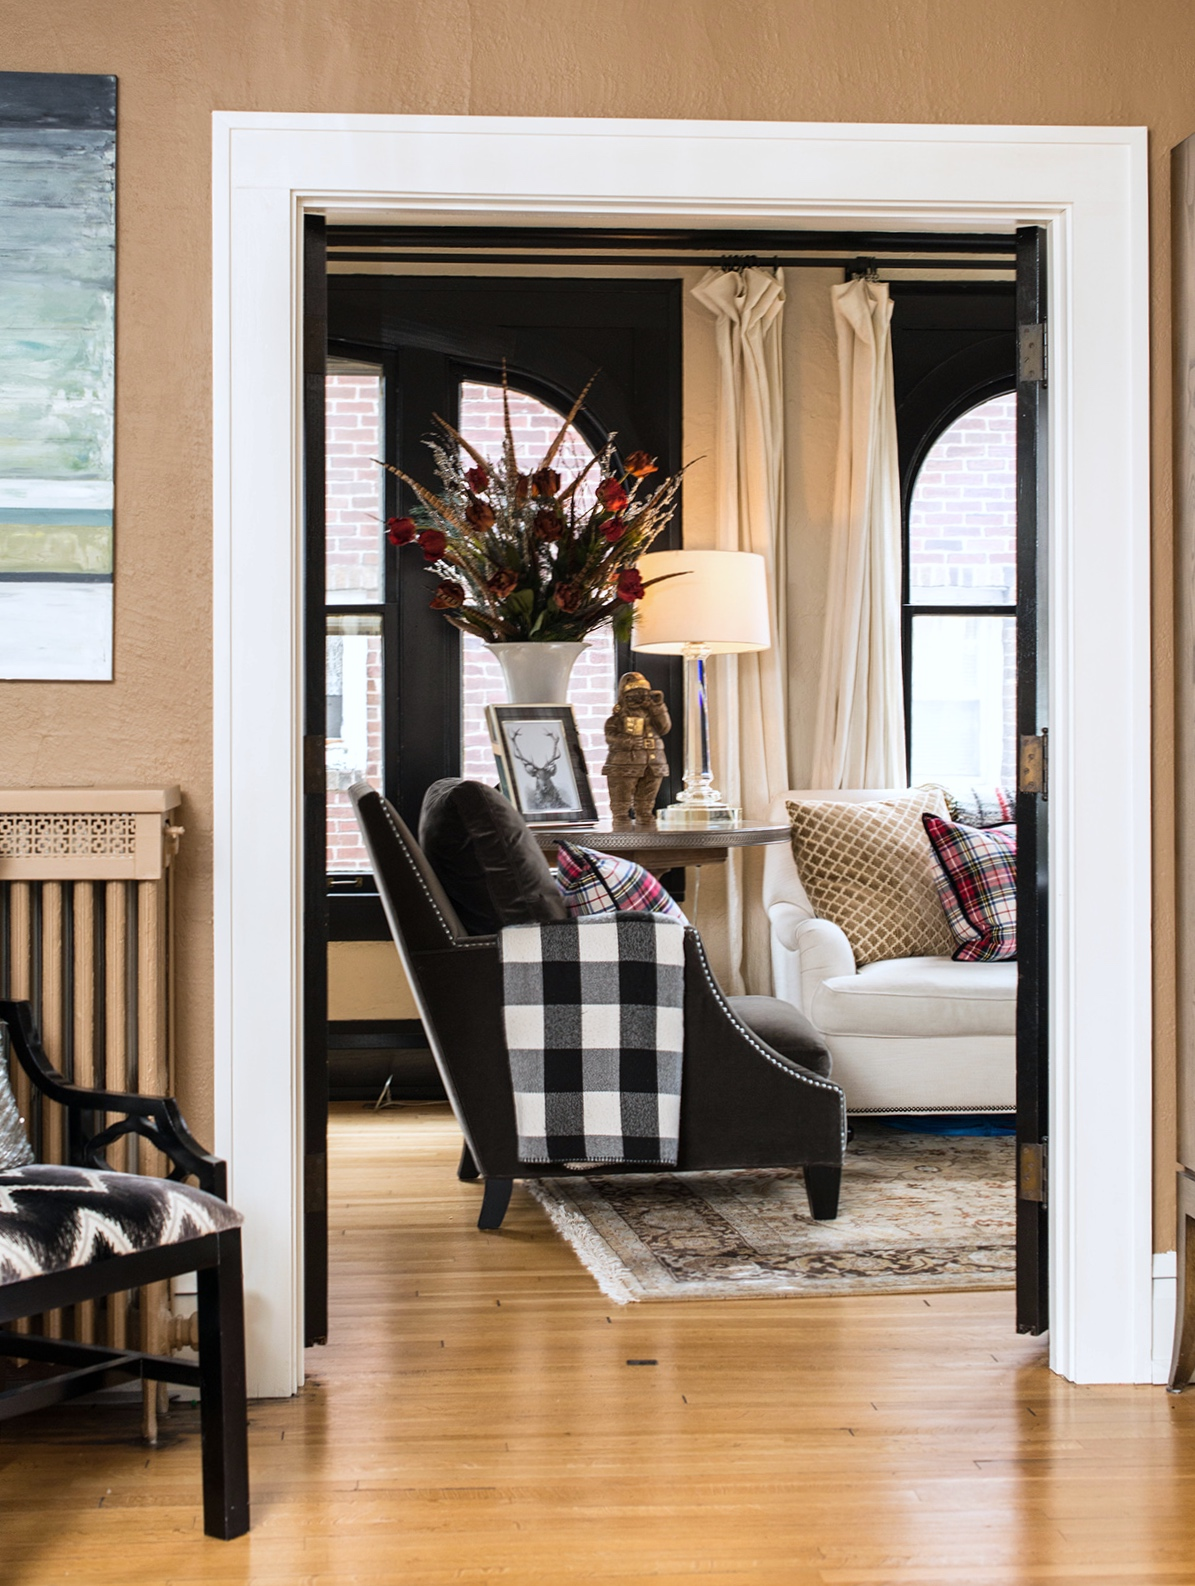 Incorporating plaids and buffalo check fabrics gives the more formal space a cozier feeling.